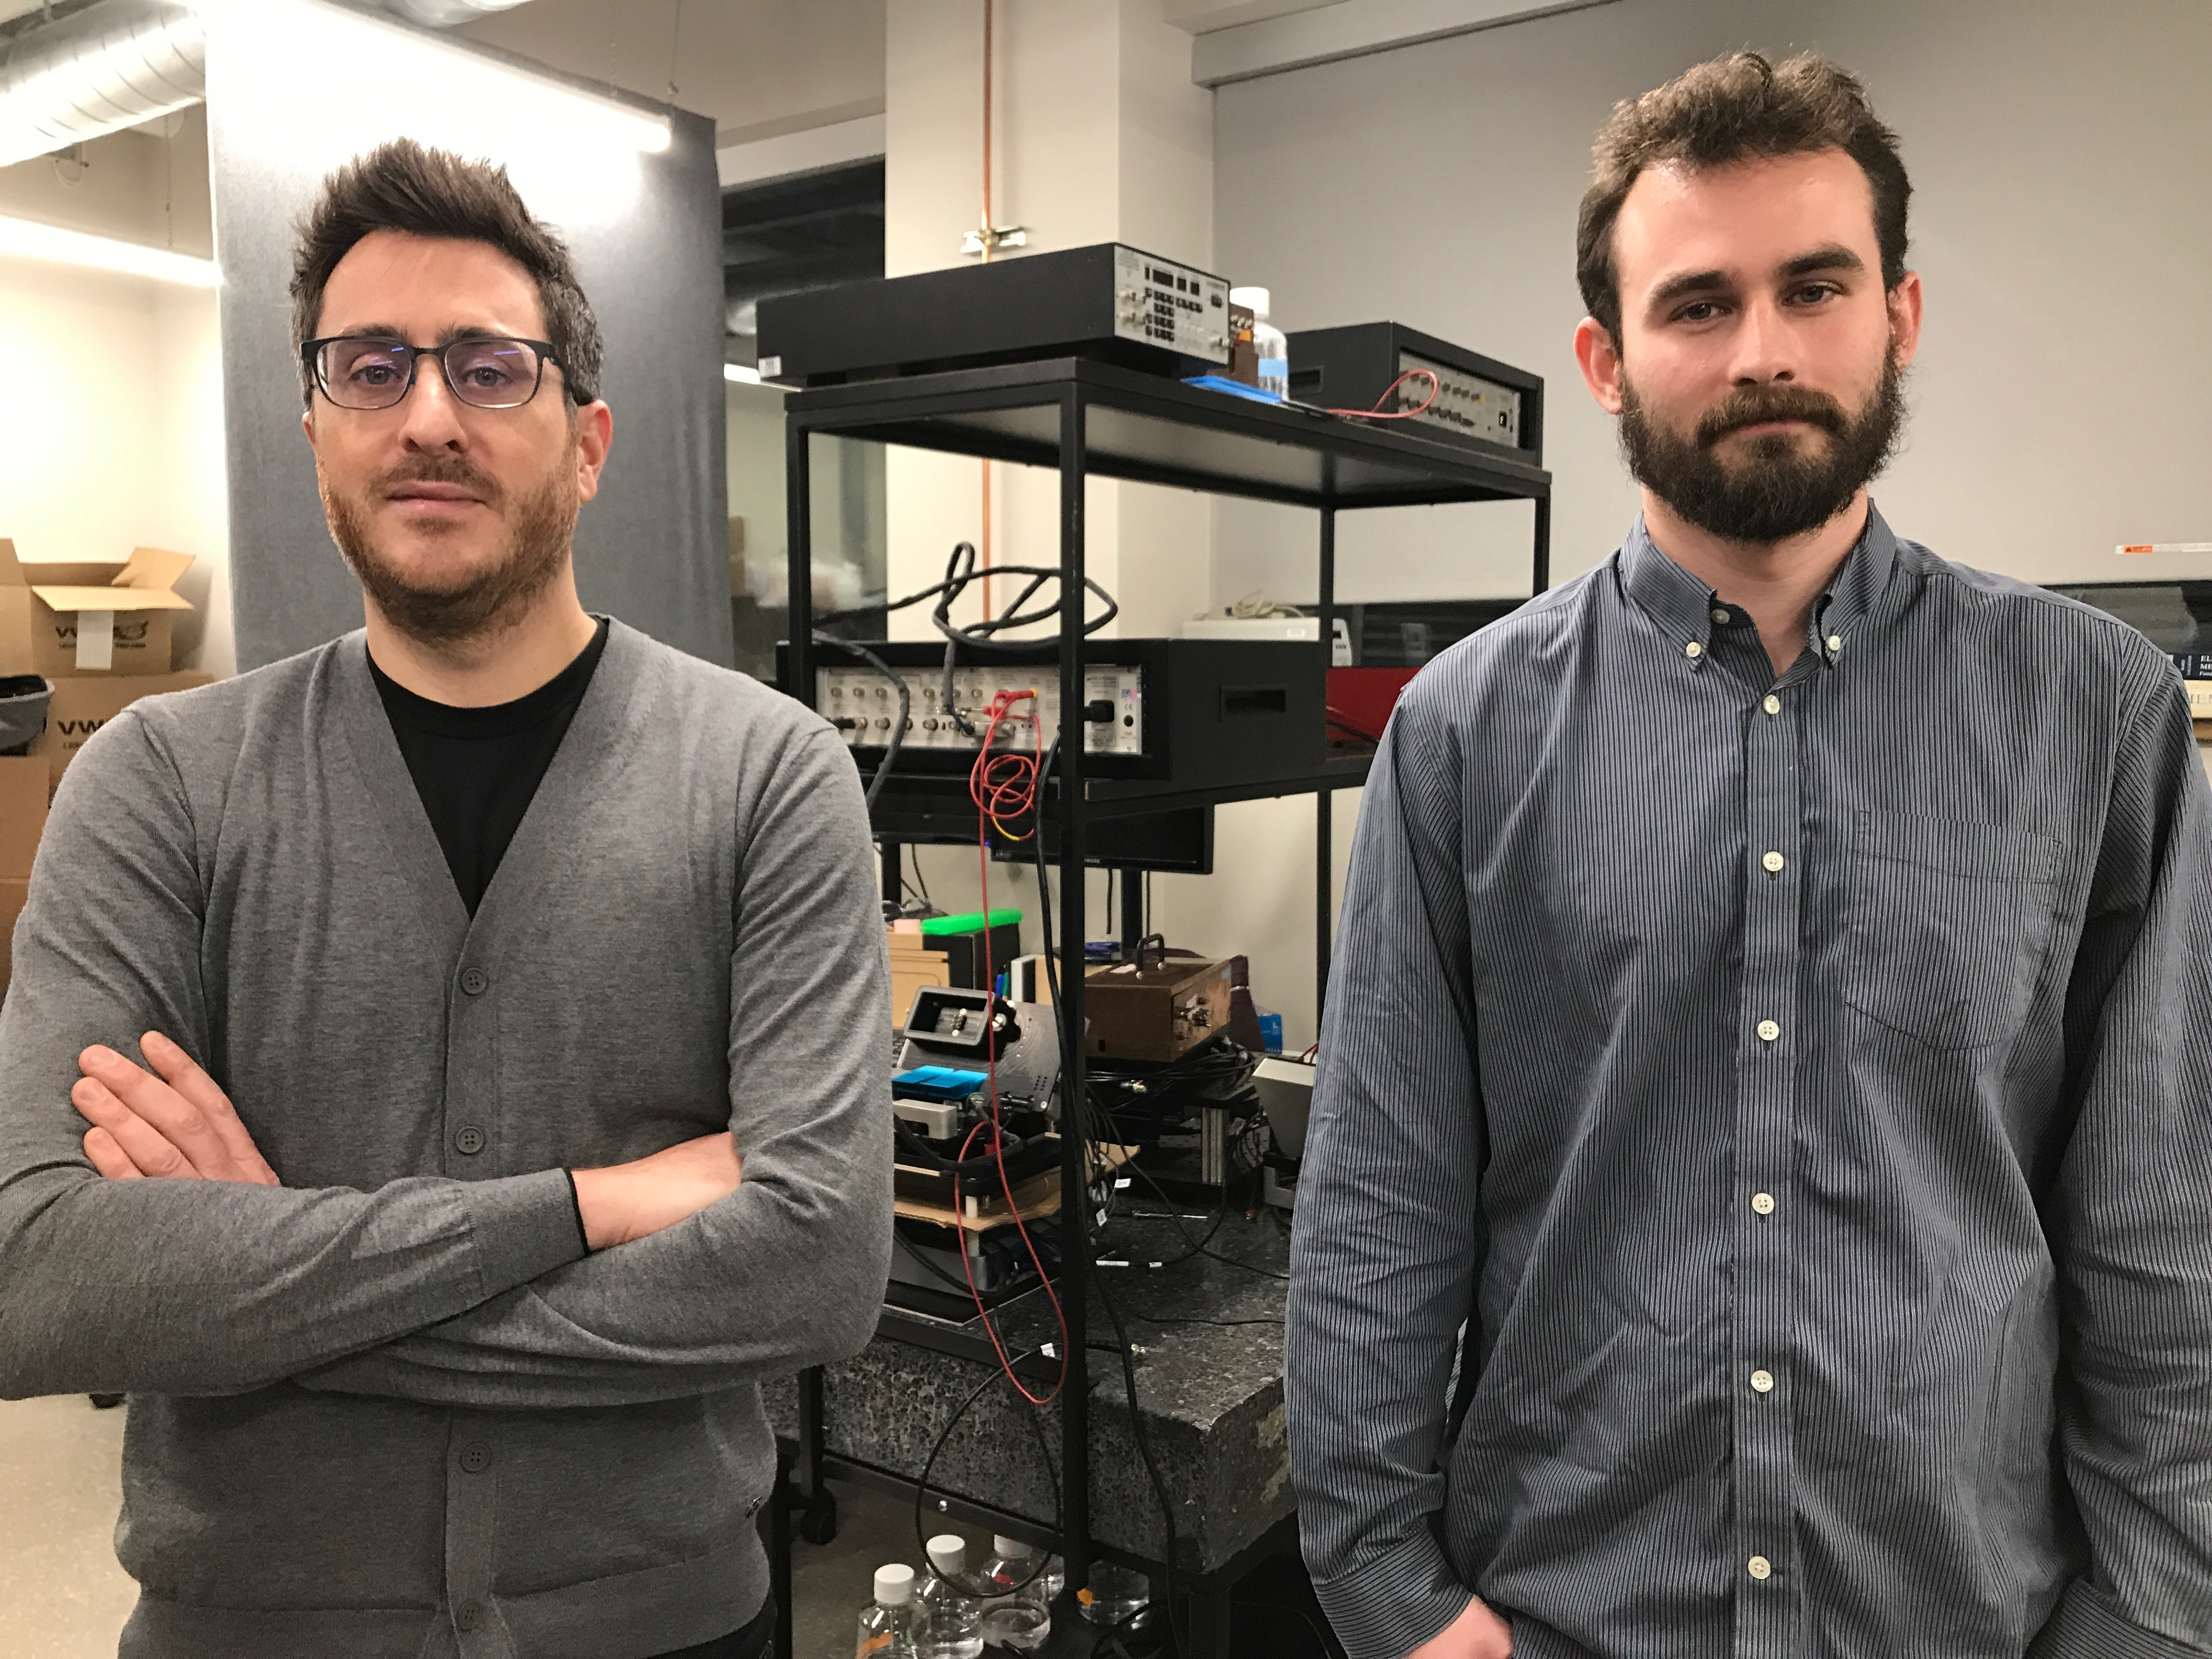 Vincent Tabard-Cossa and Kyle Briggs standing in front of the device they created